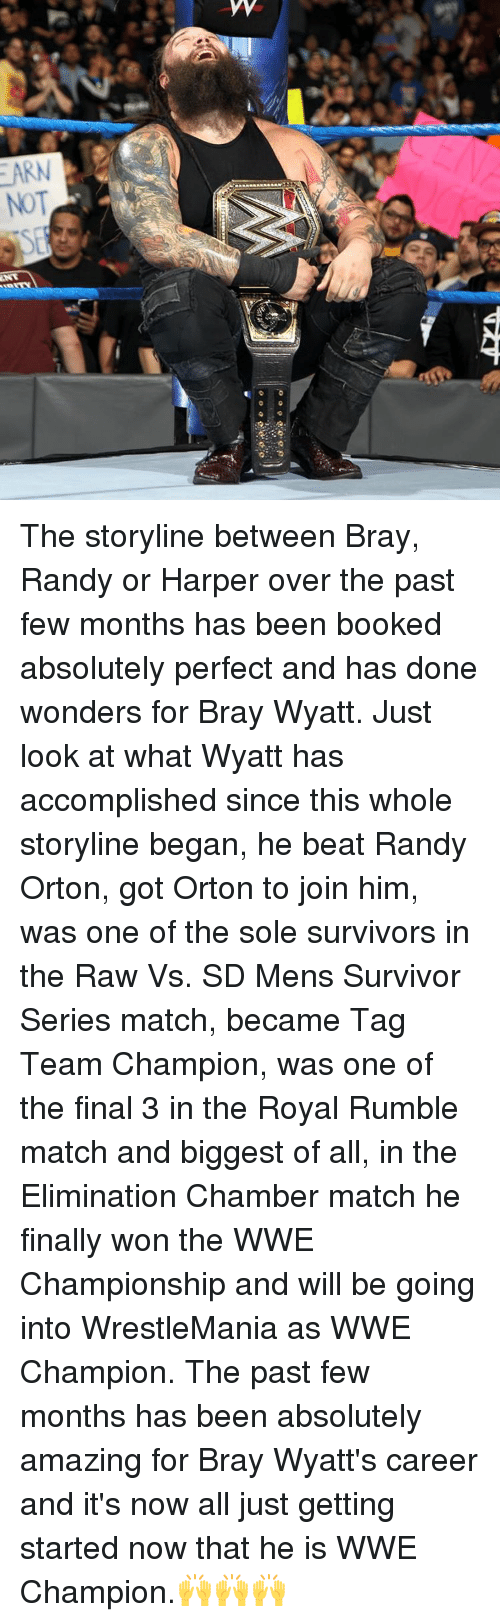 Memes, Randy Orton, and Wrestlemania: EARN  NOT The storyline between Bray, Randy or Harper over the past few months has been booked absolutely perfect and has done wonders for Bray Wyatt. Just look at what Wyatt has accomplished since this whole storyline began, he beat Randy Orton, got Orton to join him, was one of the sole survivors in the Raw Vs. SD Mens Survivor Series match, became Tag Team Champion, was one of the final 3 in the Royal Rumble match and biggest of all, in the Elimination Chamber match he finally won the WWE Championship and will be going into WrestleMania as WWE Champion. The past few months has been absolutely amazing for Bray Wyatt's career and it's now all just getting started now that he is WWE Champion.🙌🙌🙌